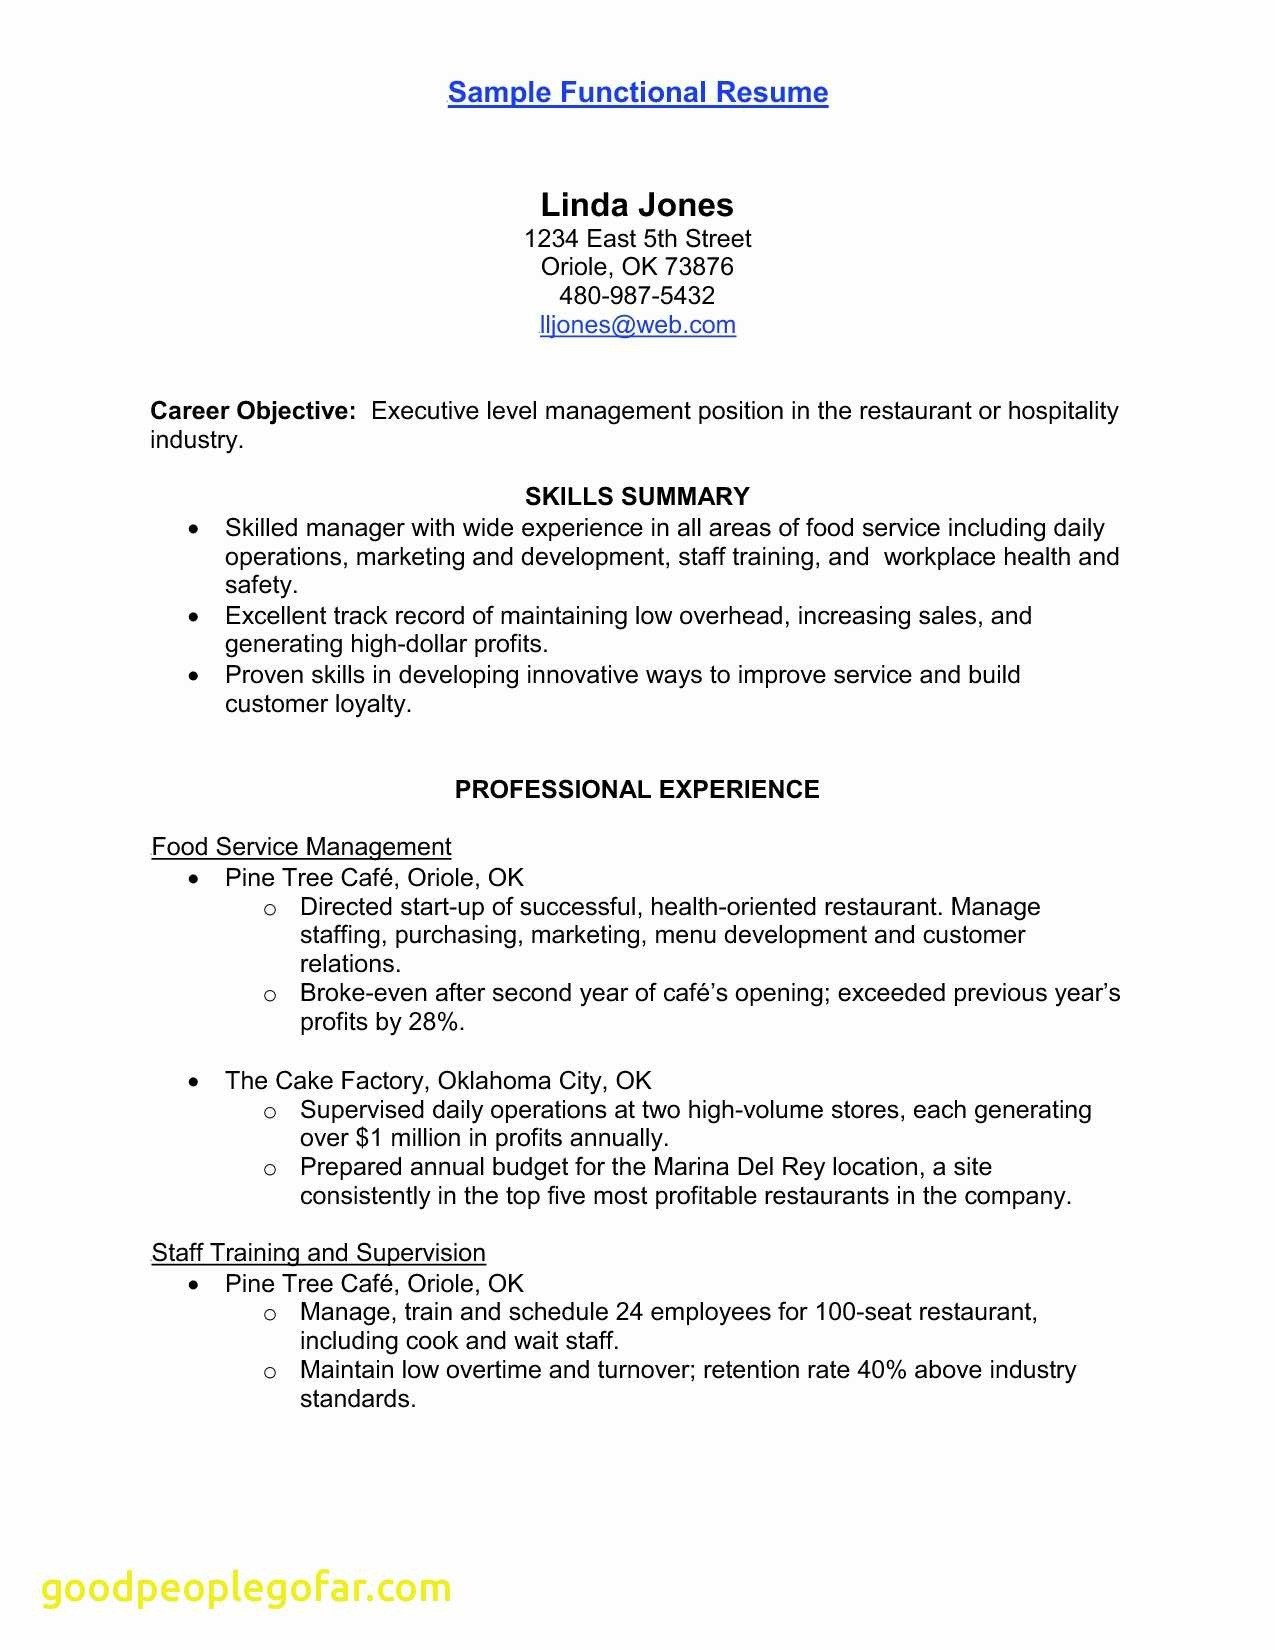 resumes for electrician apprentice Collection-Apprentice Electrician Resume Fresh Electrical Resume Elegant Technicians Resume New Obama Resume 0d Apprentice Electrician 1-a